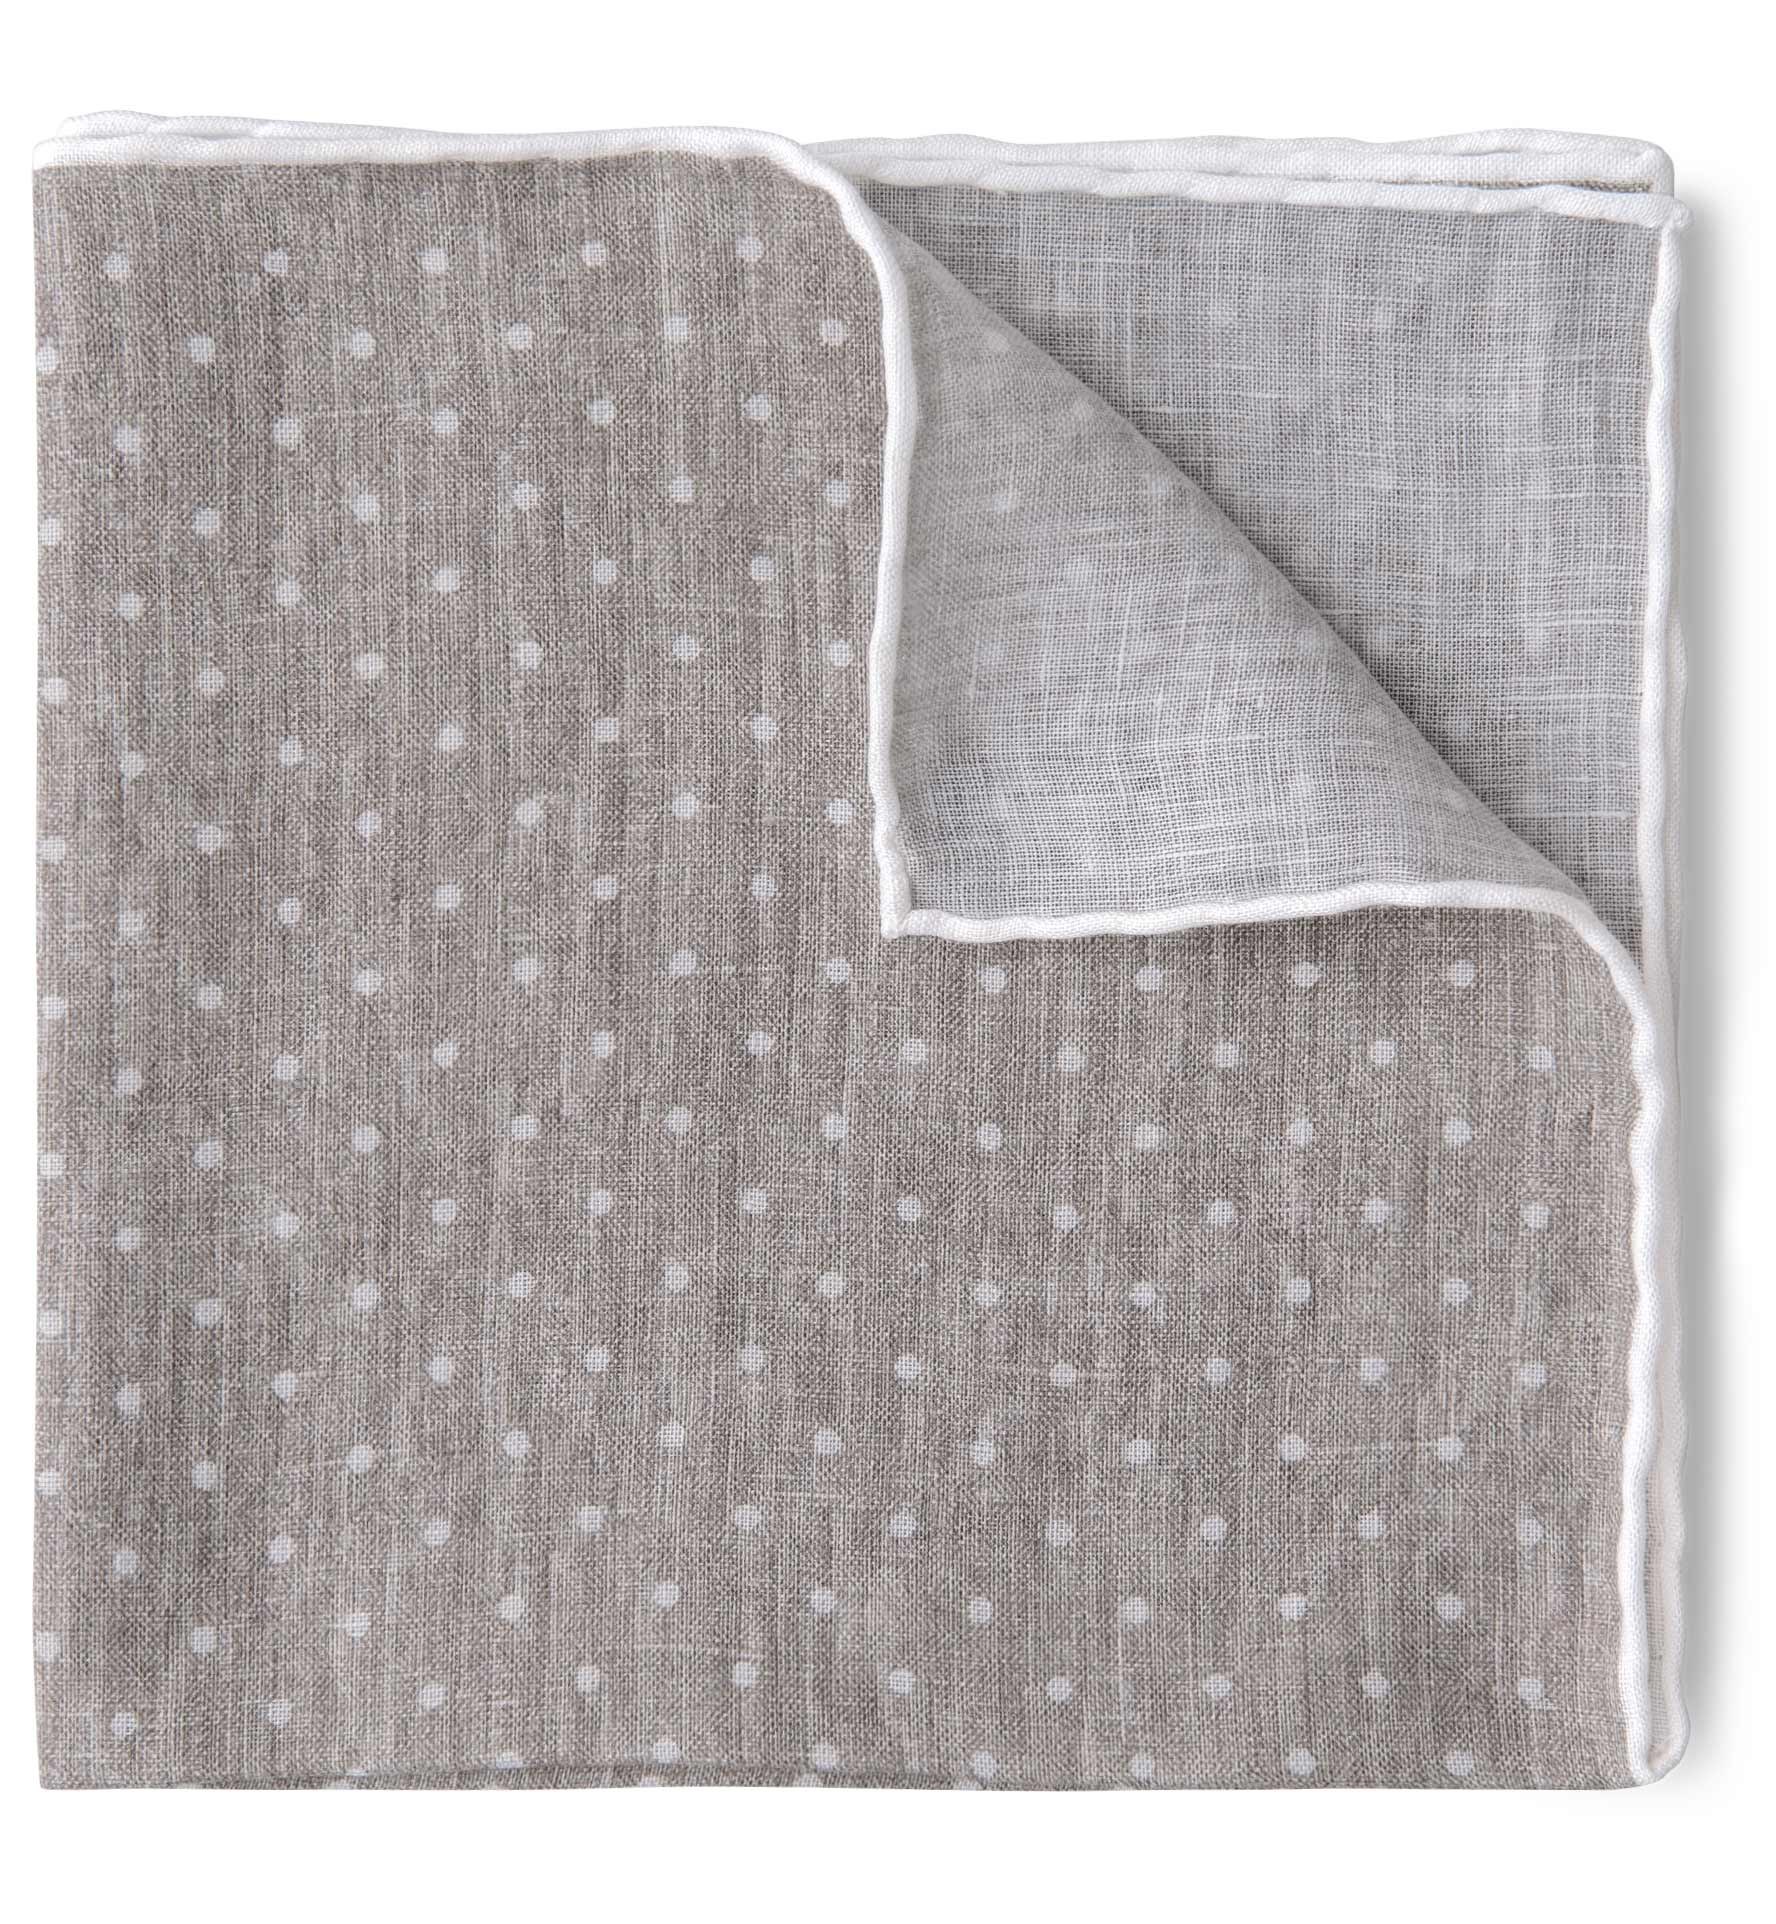 Zoom Image of Taupe and White Dot Print Linen Pocket Square